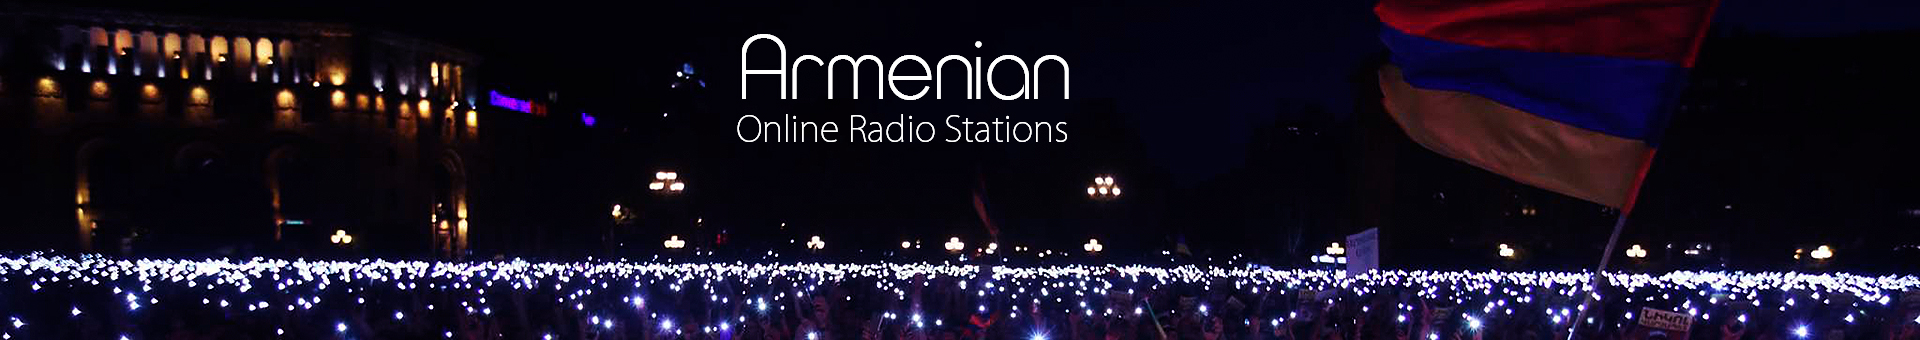 Armenian Online Radio Stations